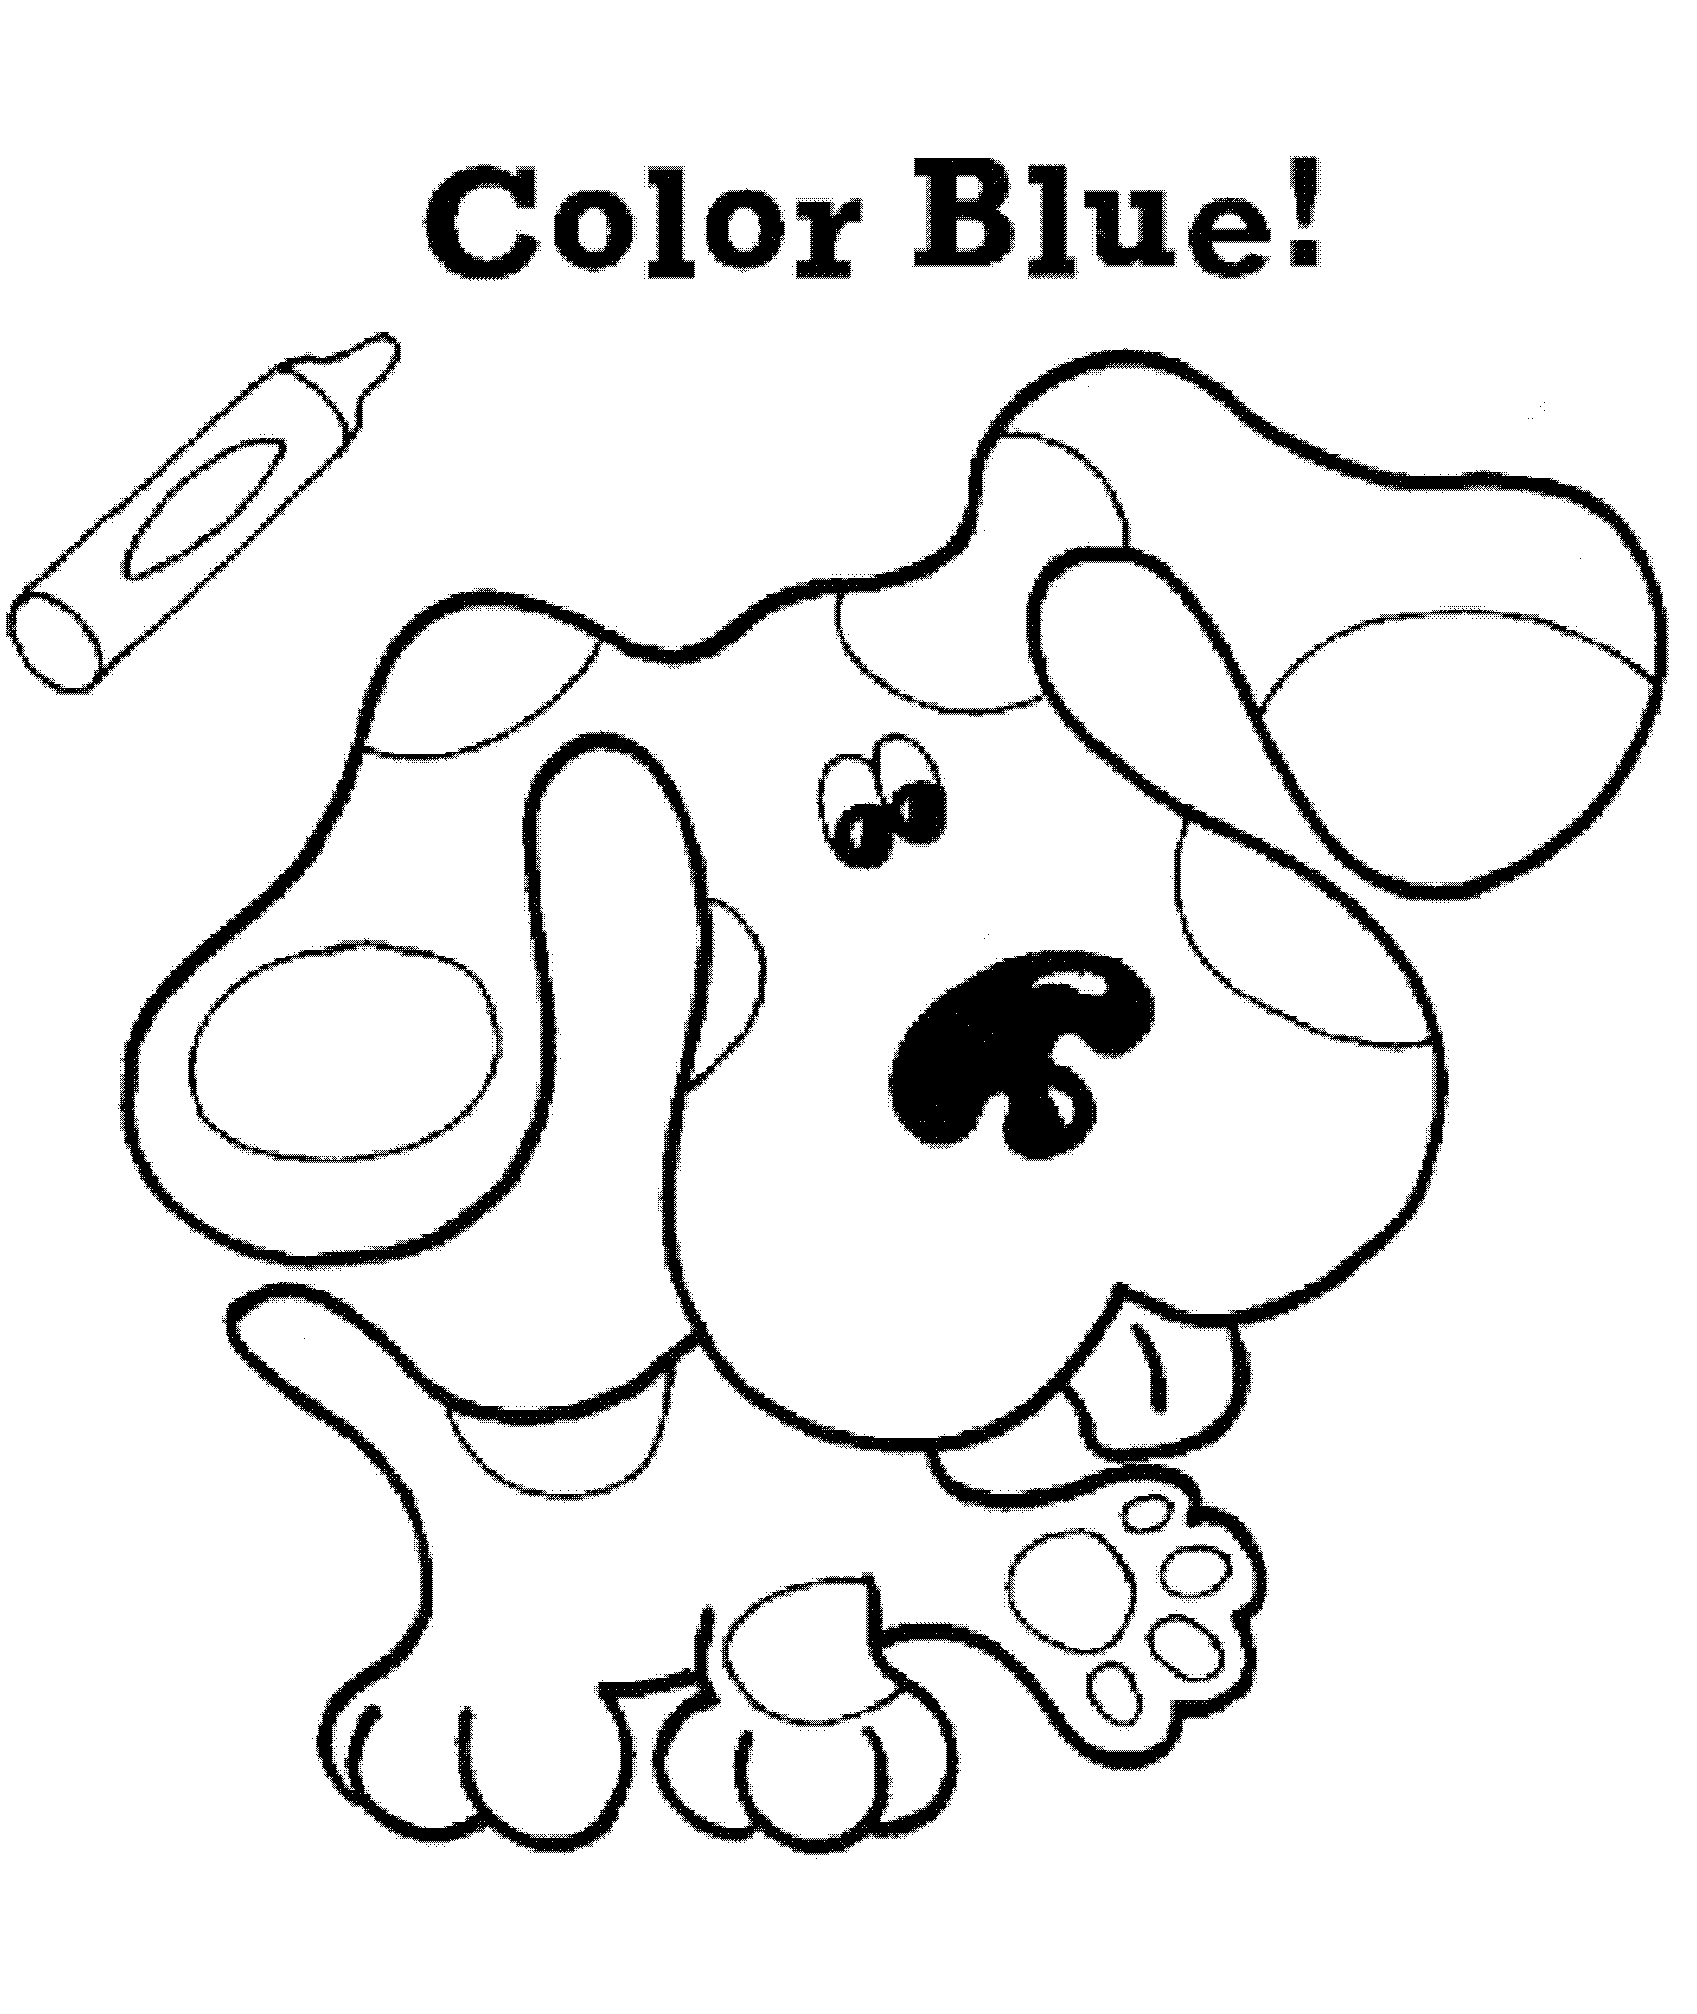 blue and sprinkle coloring pages | Kids-n-fun.com | 15 coloring pages of Blues Clues